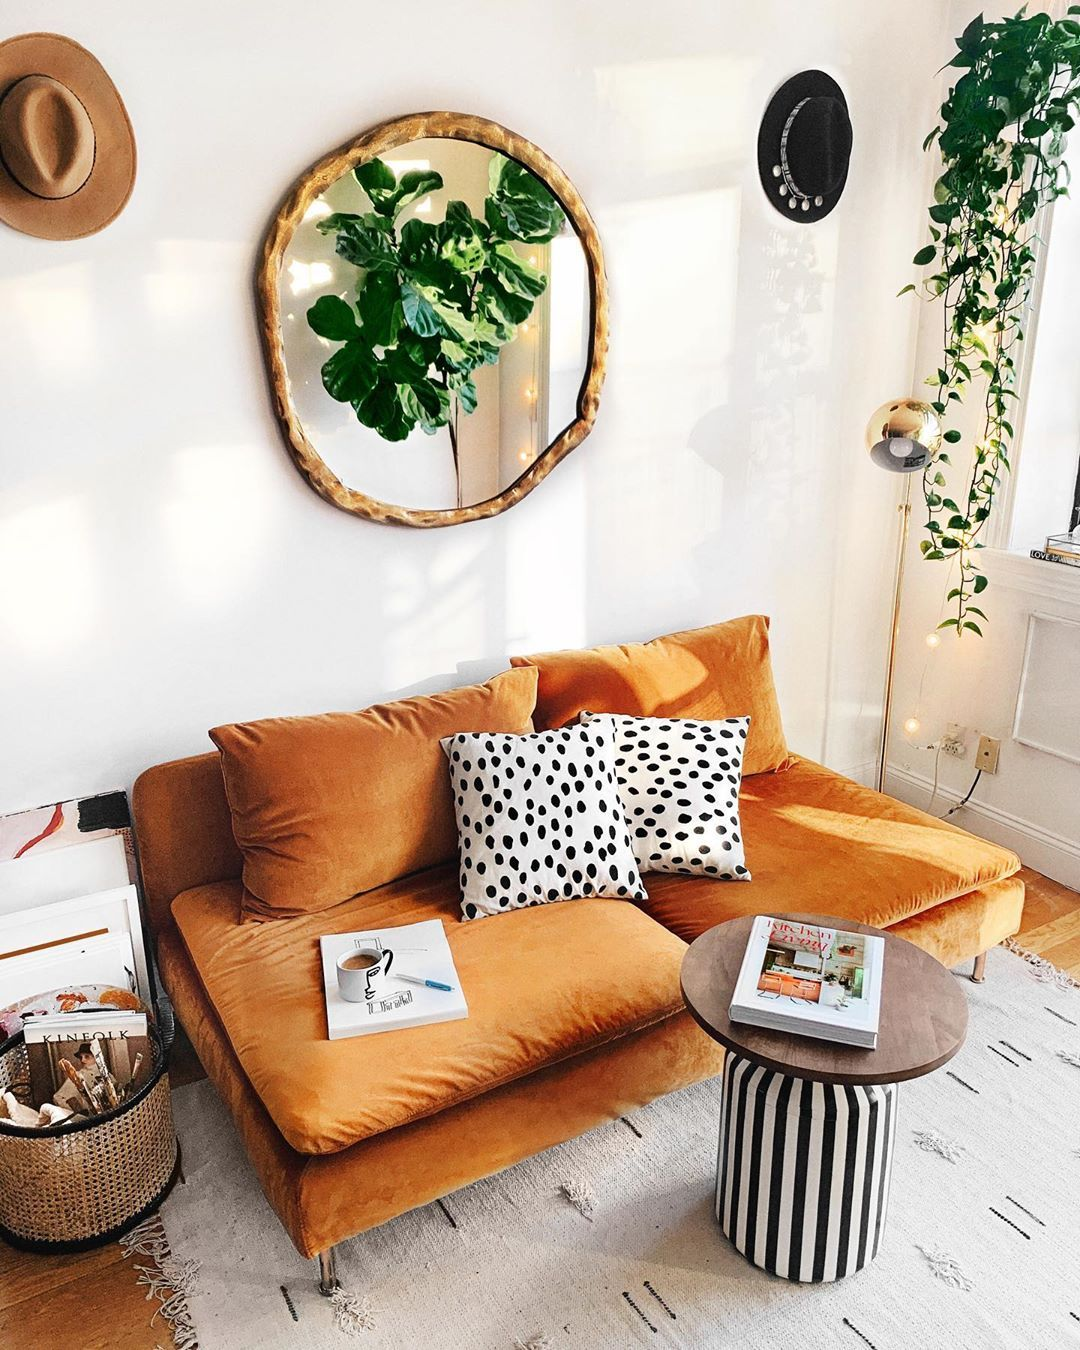 @viktoria.dahlberg's living room never gets old 🤩🤩🤩. So stylish with the mirror and colors! Click the image to try our free home design app.  (Keywords: living room decor, living room ideas, living room designs, dream rooms, house design, home decor ideas, living room rugs, living room furniture, positive vibes, positive thoughts, boho living room)